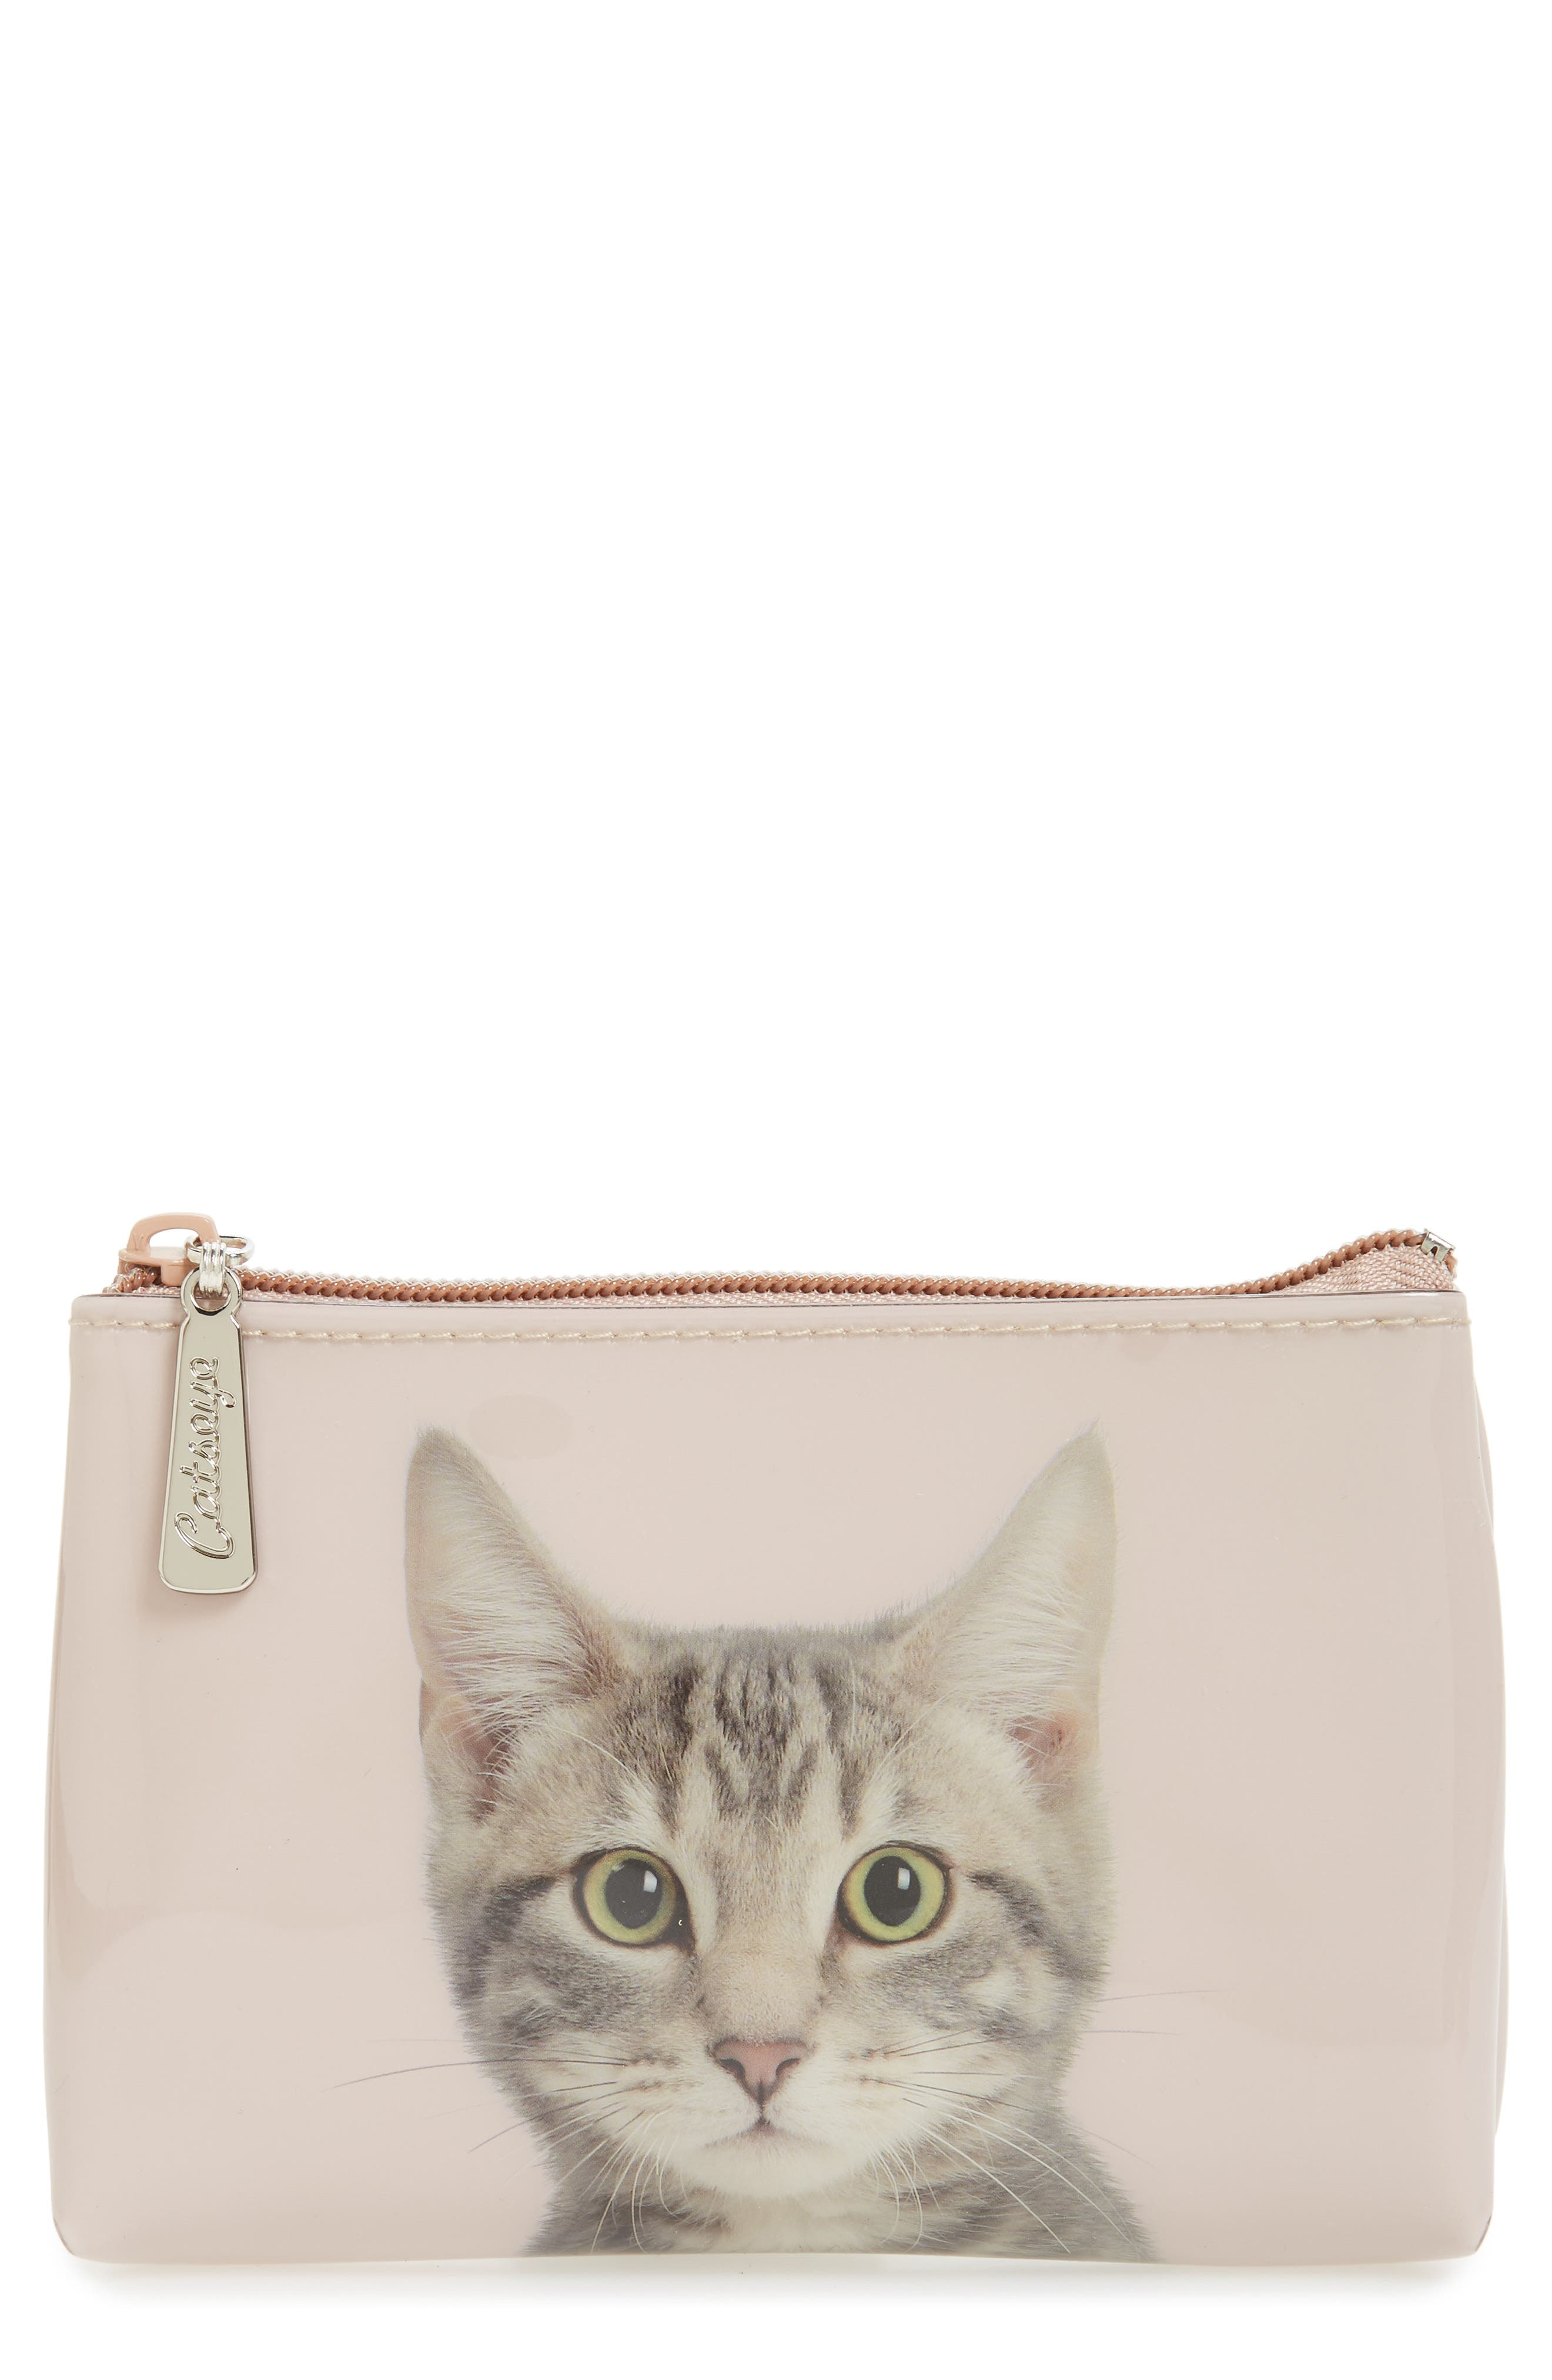 Small Kitty Zip Pouch,                             Main thumbnail 1, color,                             250